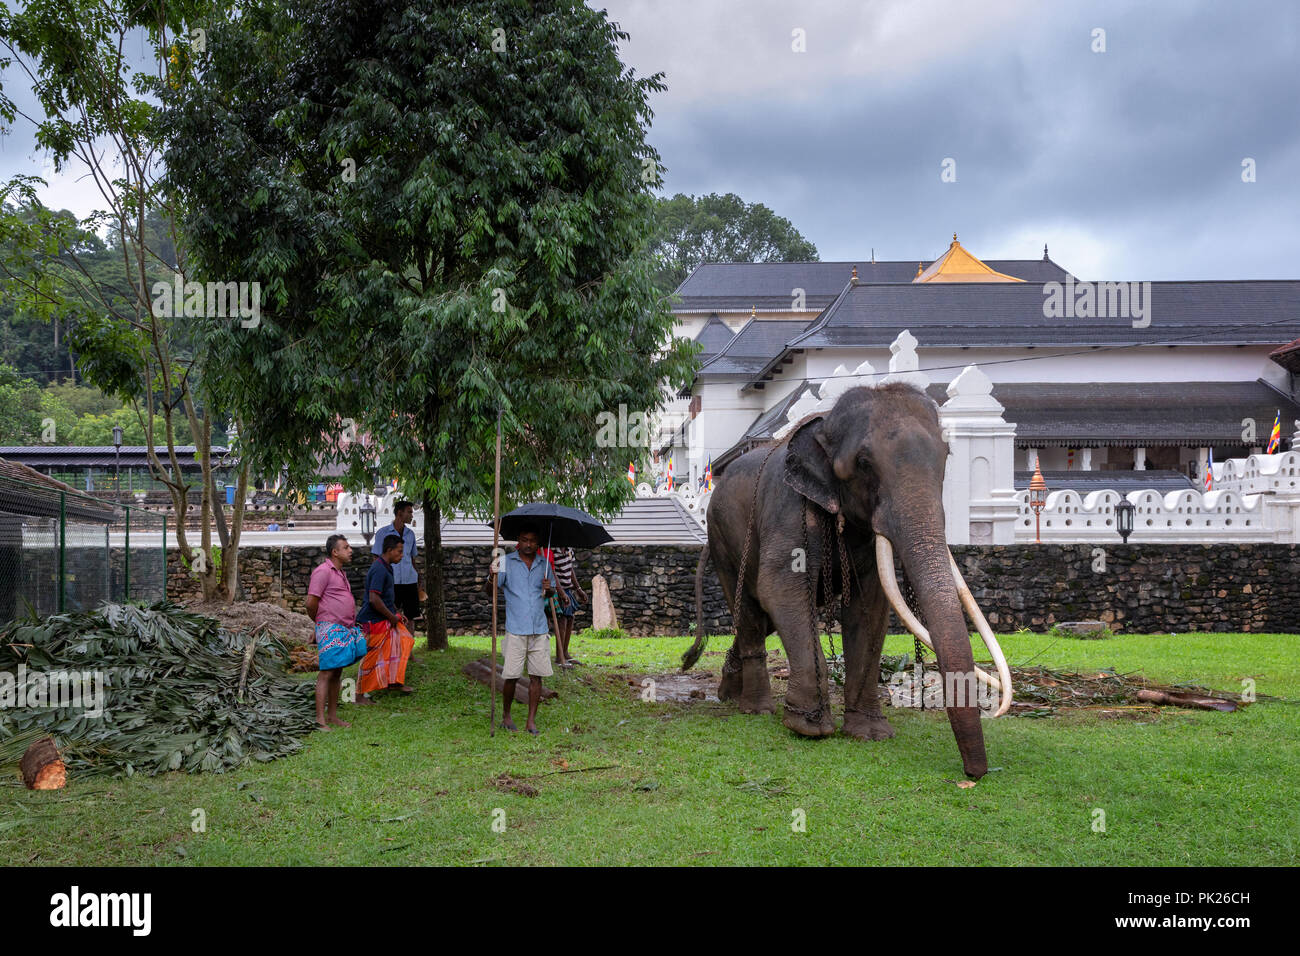 Elephant chained in front of the Temple of the Sacred Tooth Relic, Kandy, Sri Lanka - Stock Image